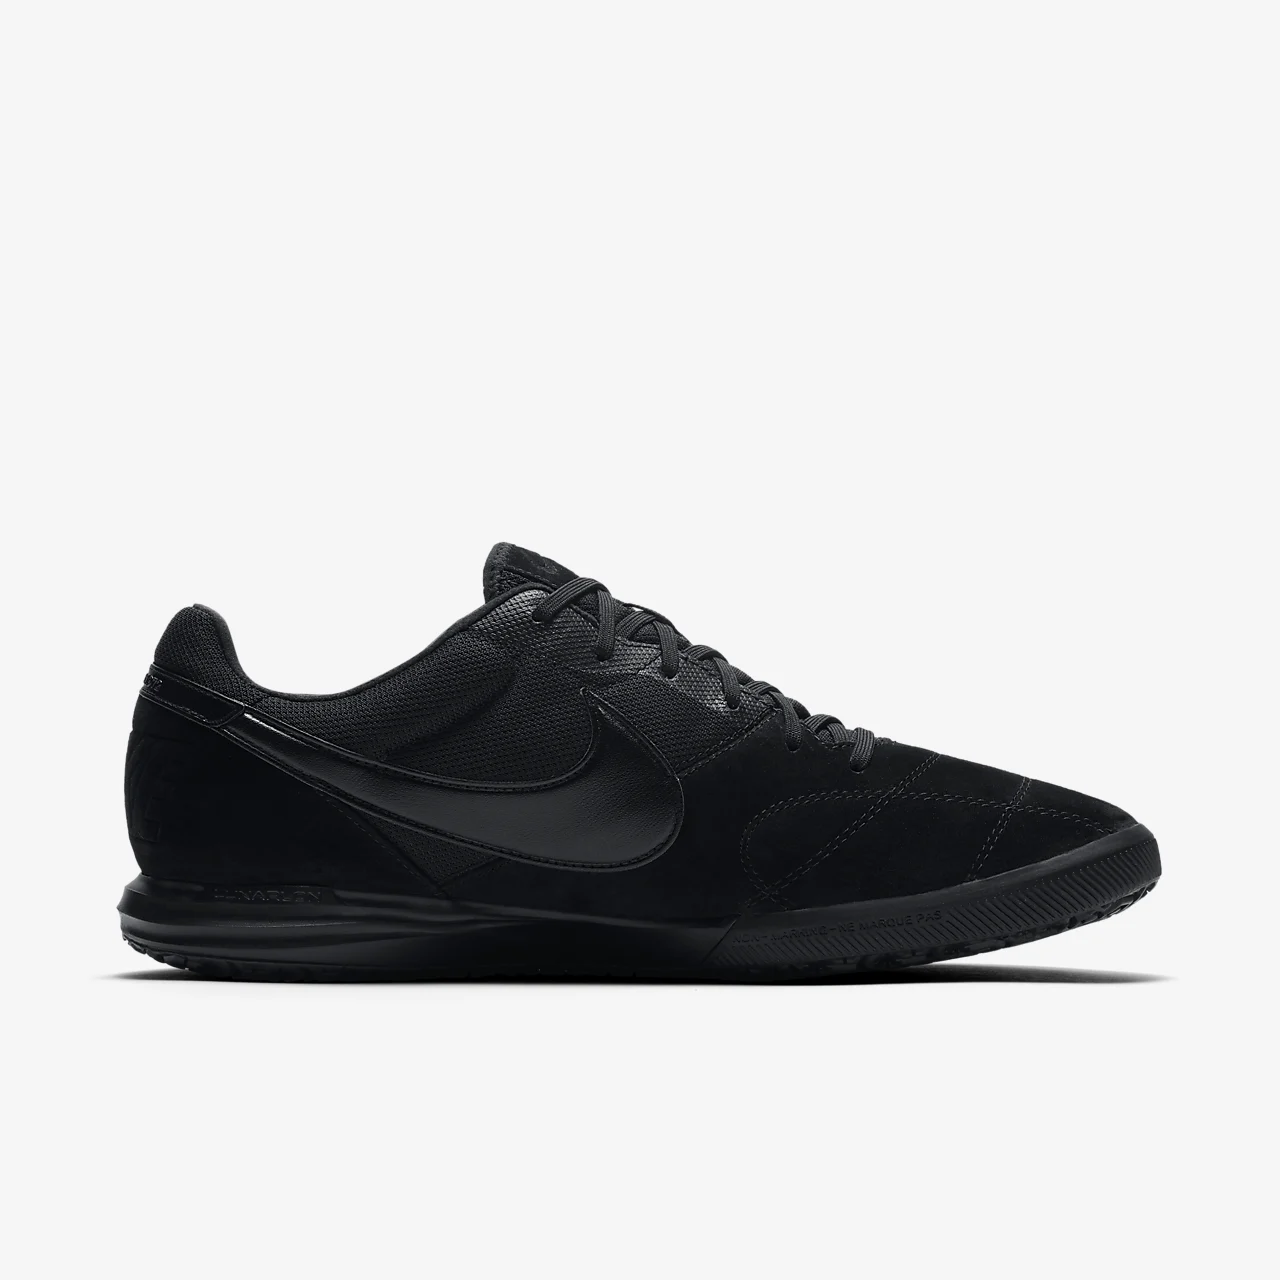 유럽직배송 나이키 NIKE Nike Premier 2 Sala IC Indoor/Court Football Shoe AV3153-011